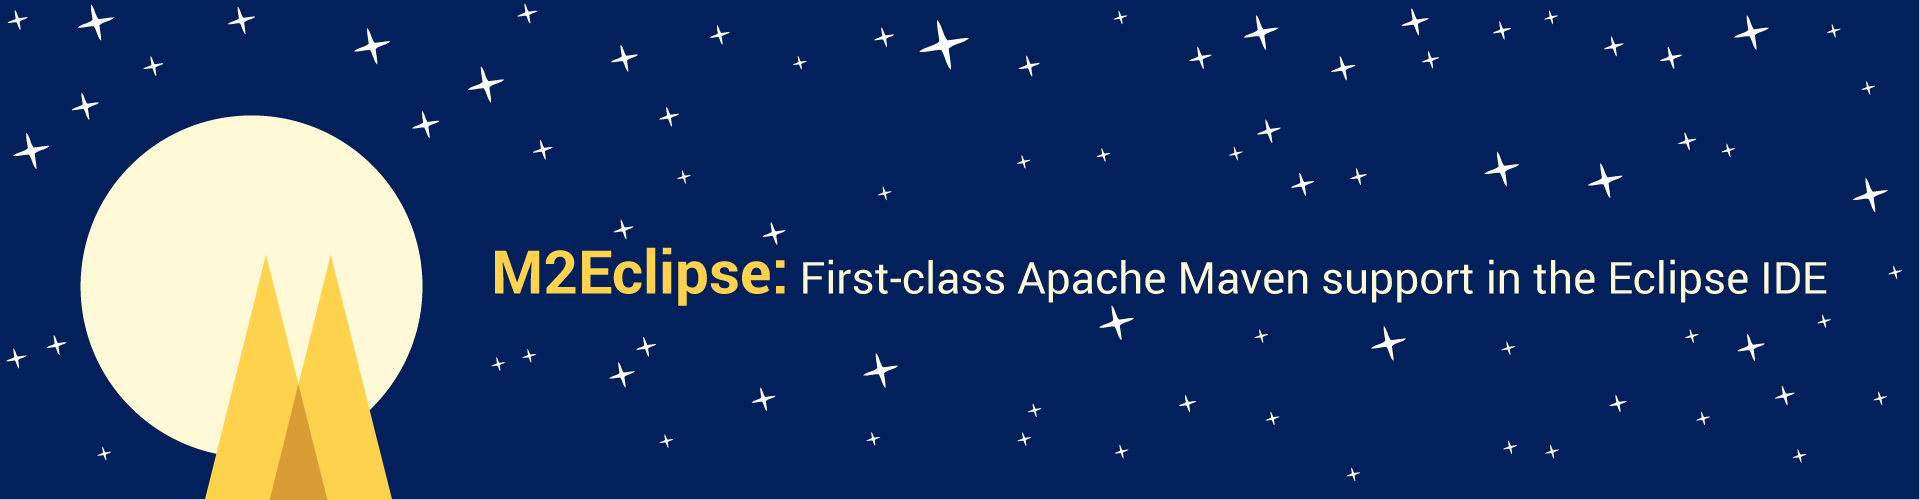 M2Eclipse: First-class Apache Maven support in the Eclipse IDE